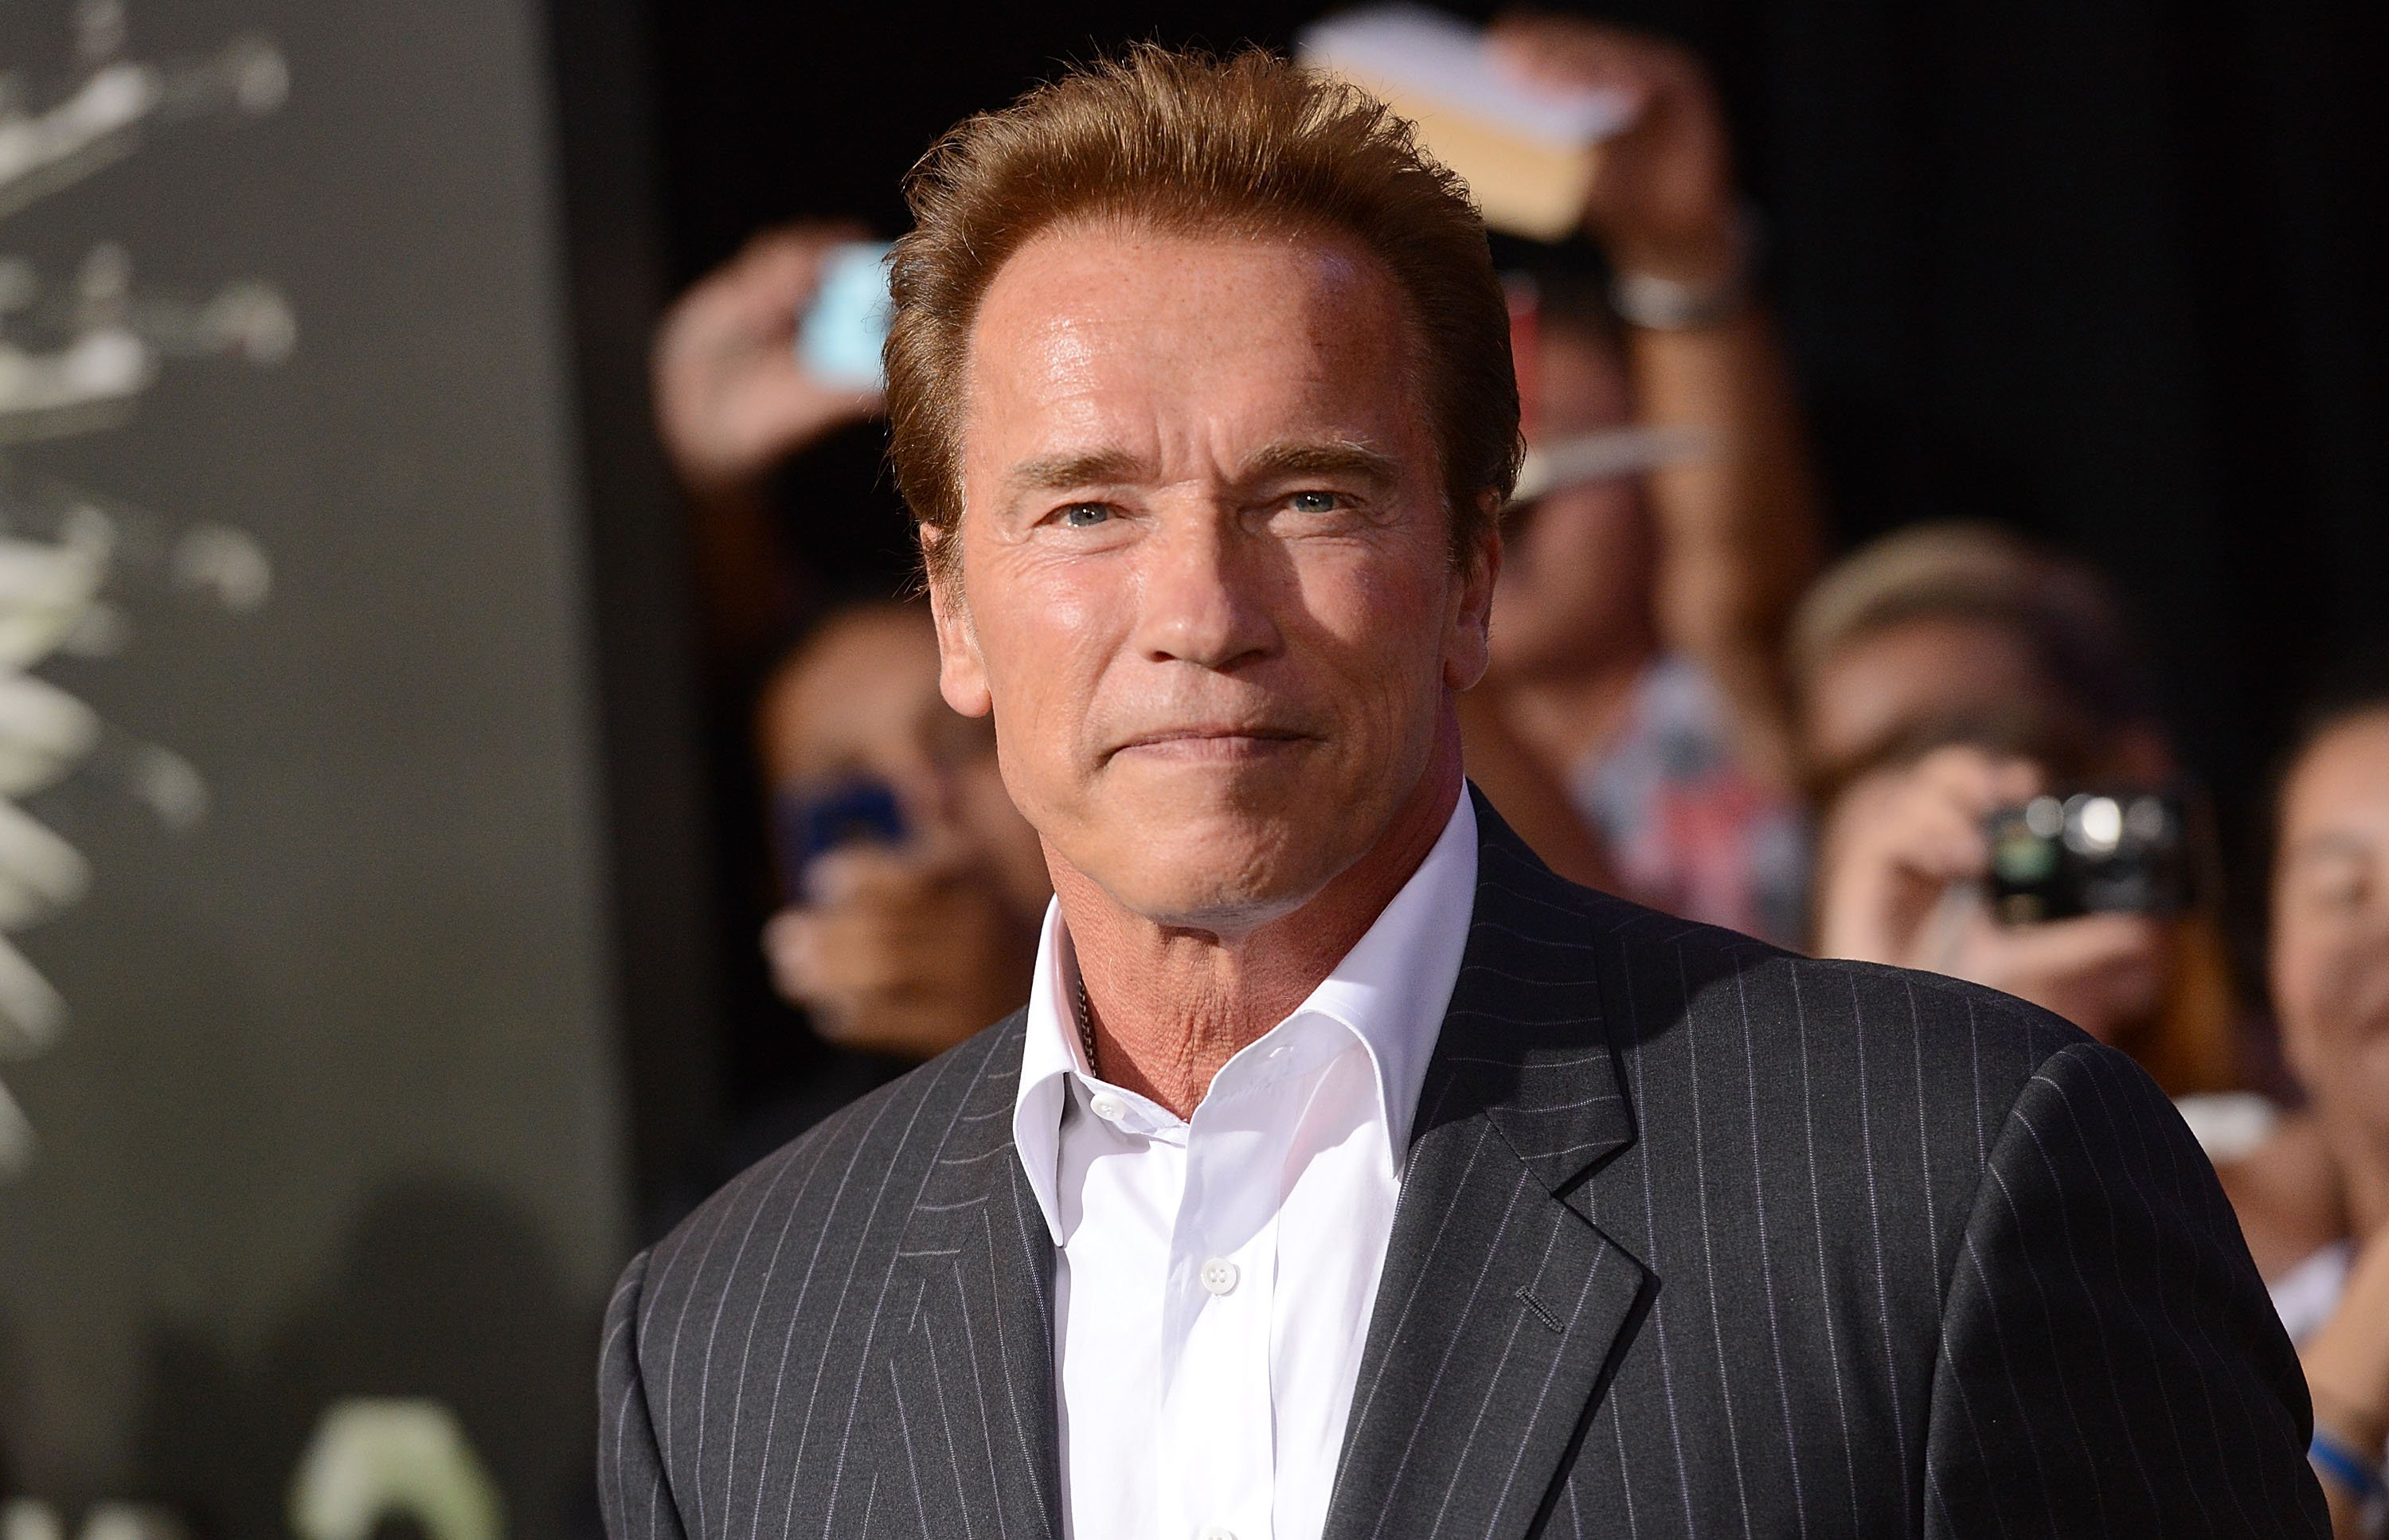 Arnold Schwarzenegger arrives at Lionsgate Films' 'The Expendables 2' premiere on August 15, 2012 in Hollywood